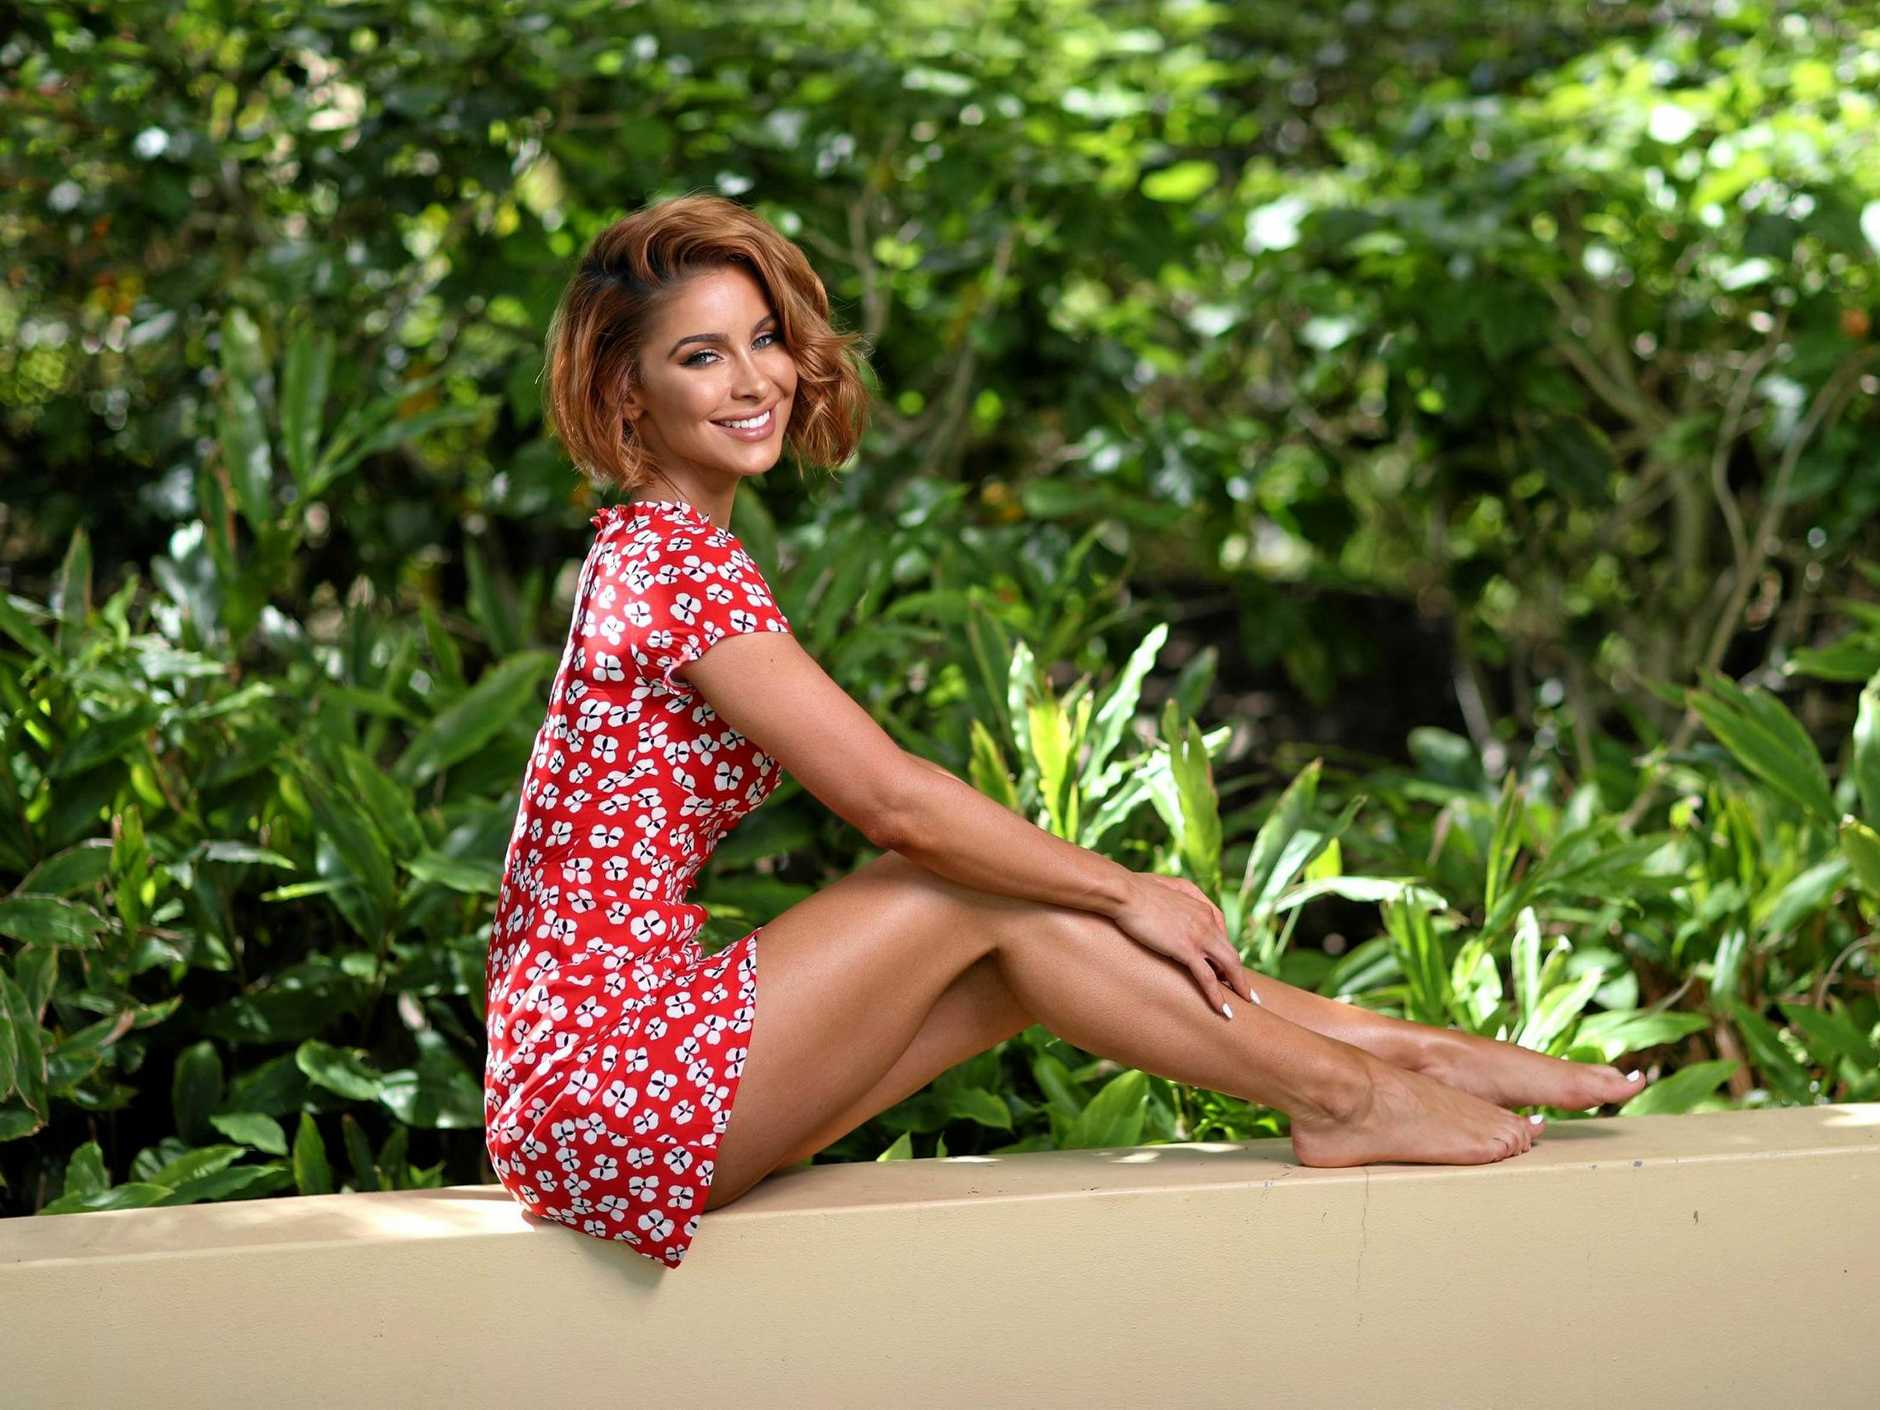 Brisbane-based model and actor Ellie Gonsalves stars in the new movie Fighting With My Family.